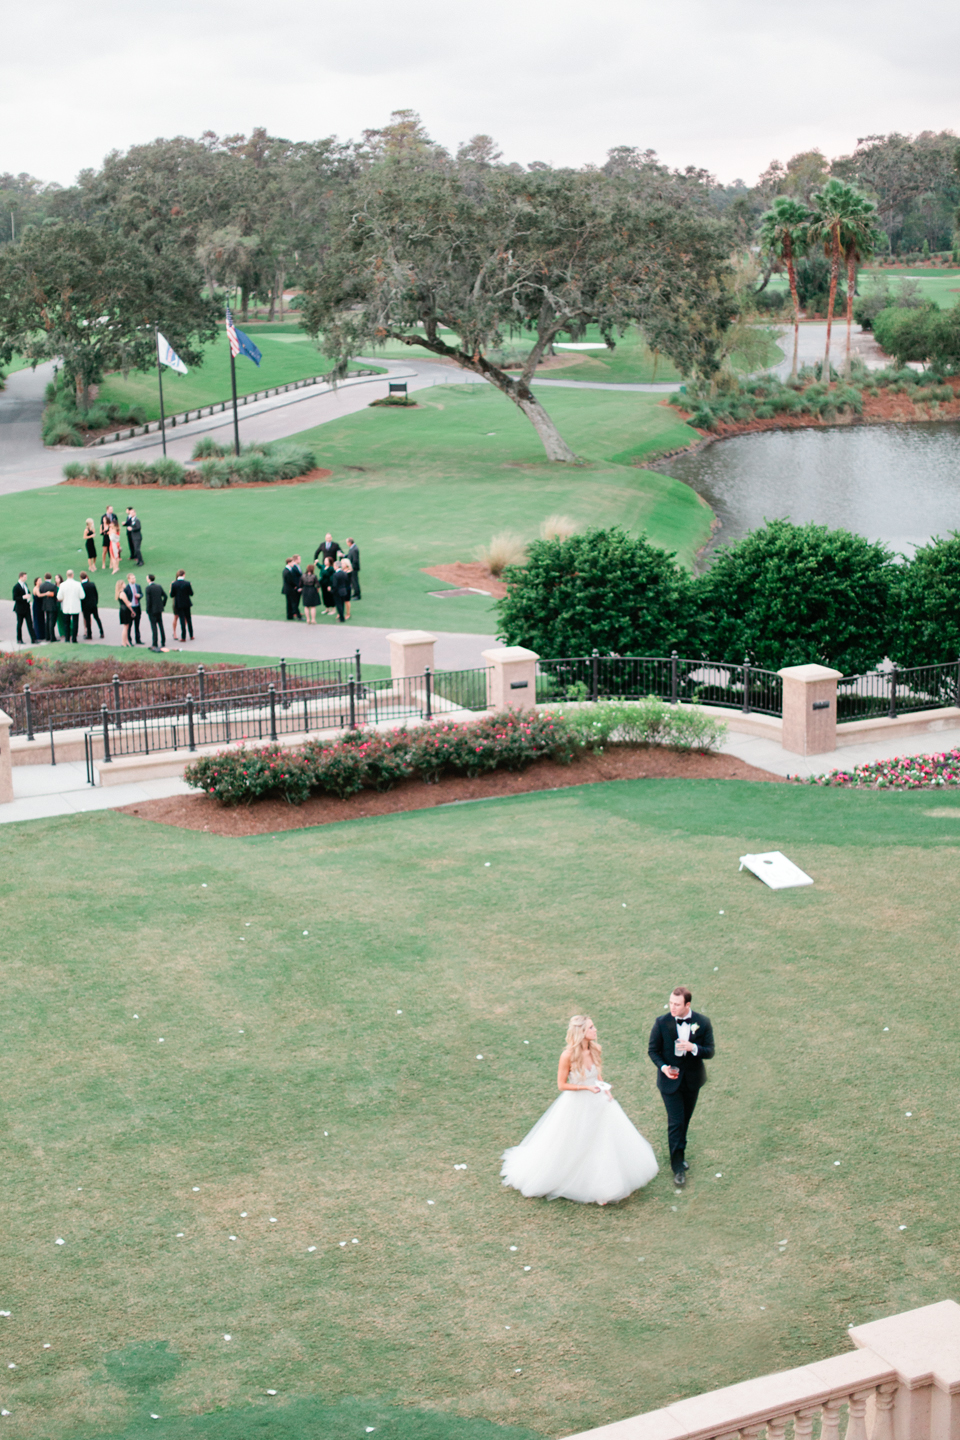 Image of a bride and groom walking the green at TPC Sawgrass in Ponte Vedra, Florida